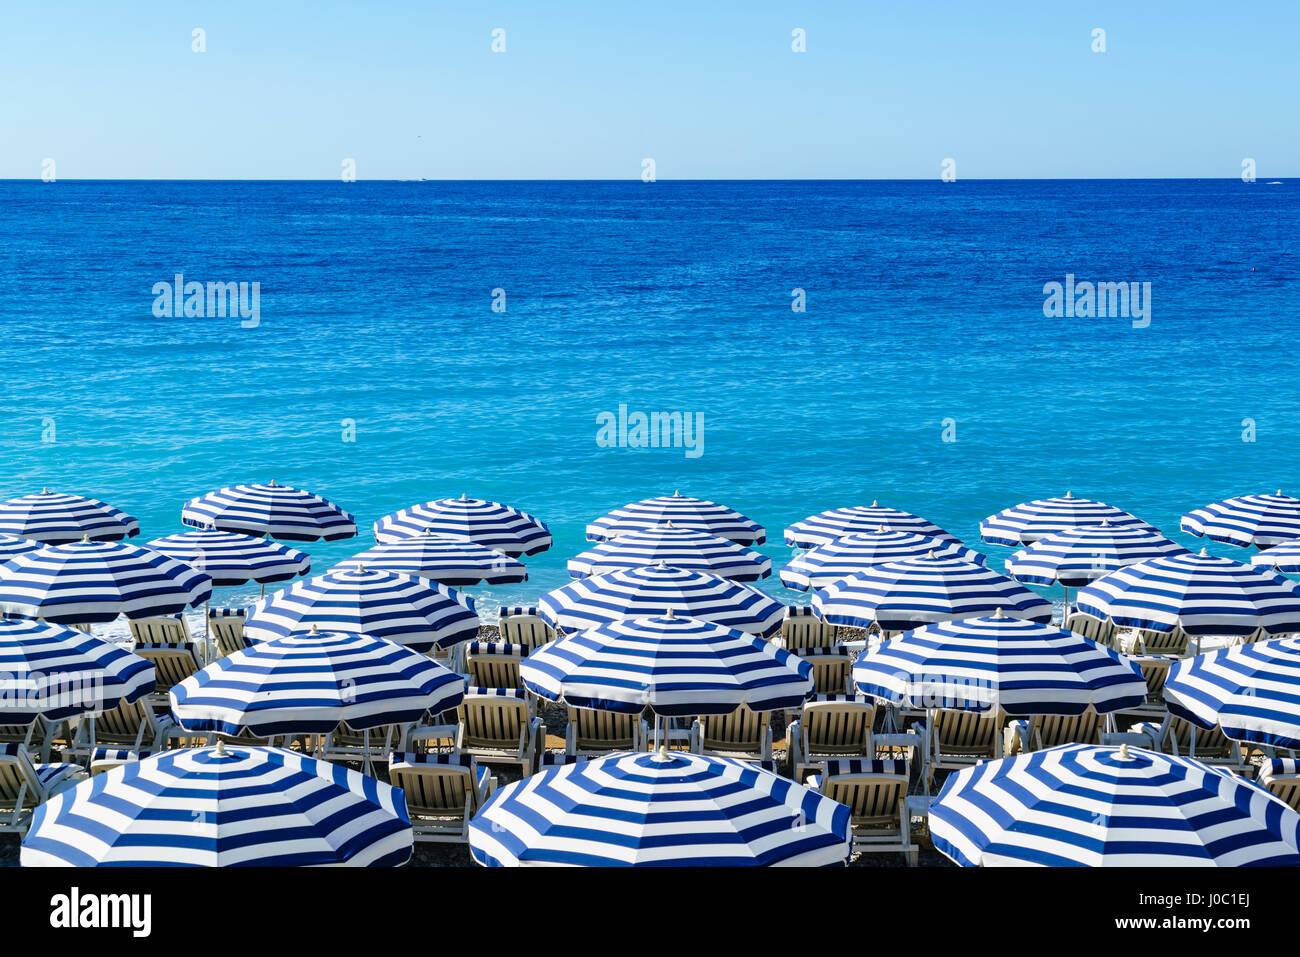 Blue and white beach parasols, Nice, Alpes Maritimes, Cote d'Azur, Provence, France, Mediterranean - Stock Image